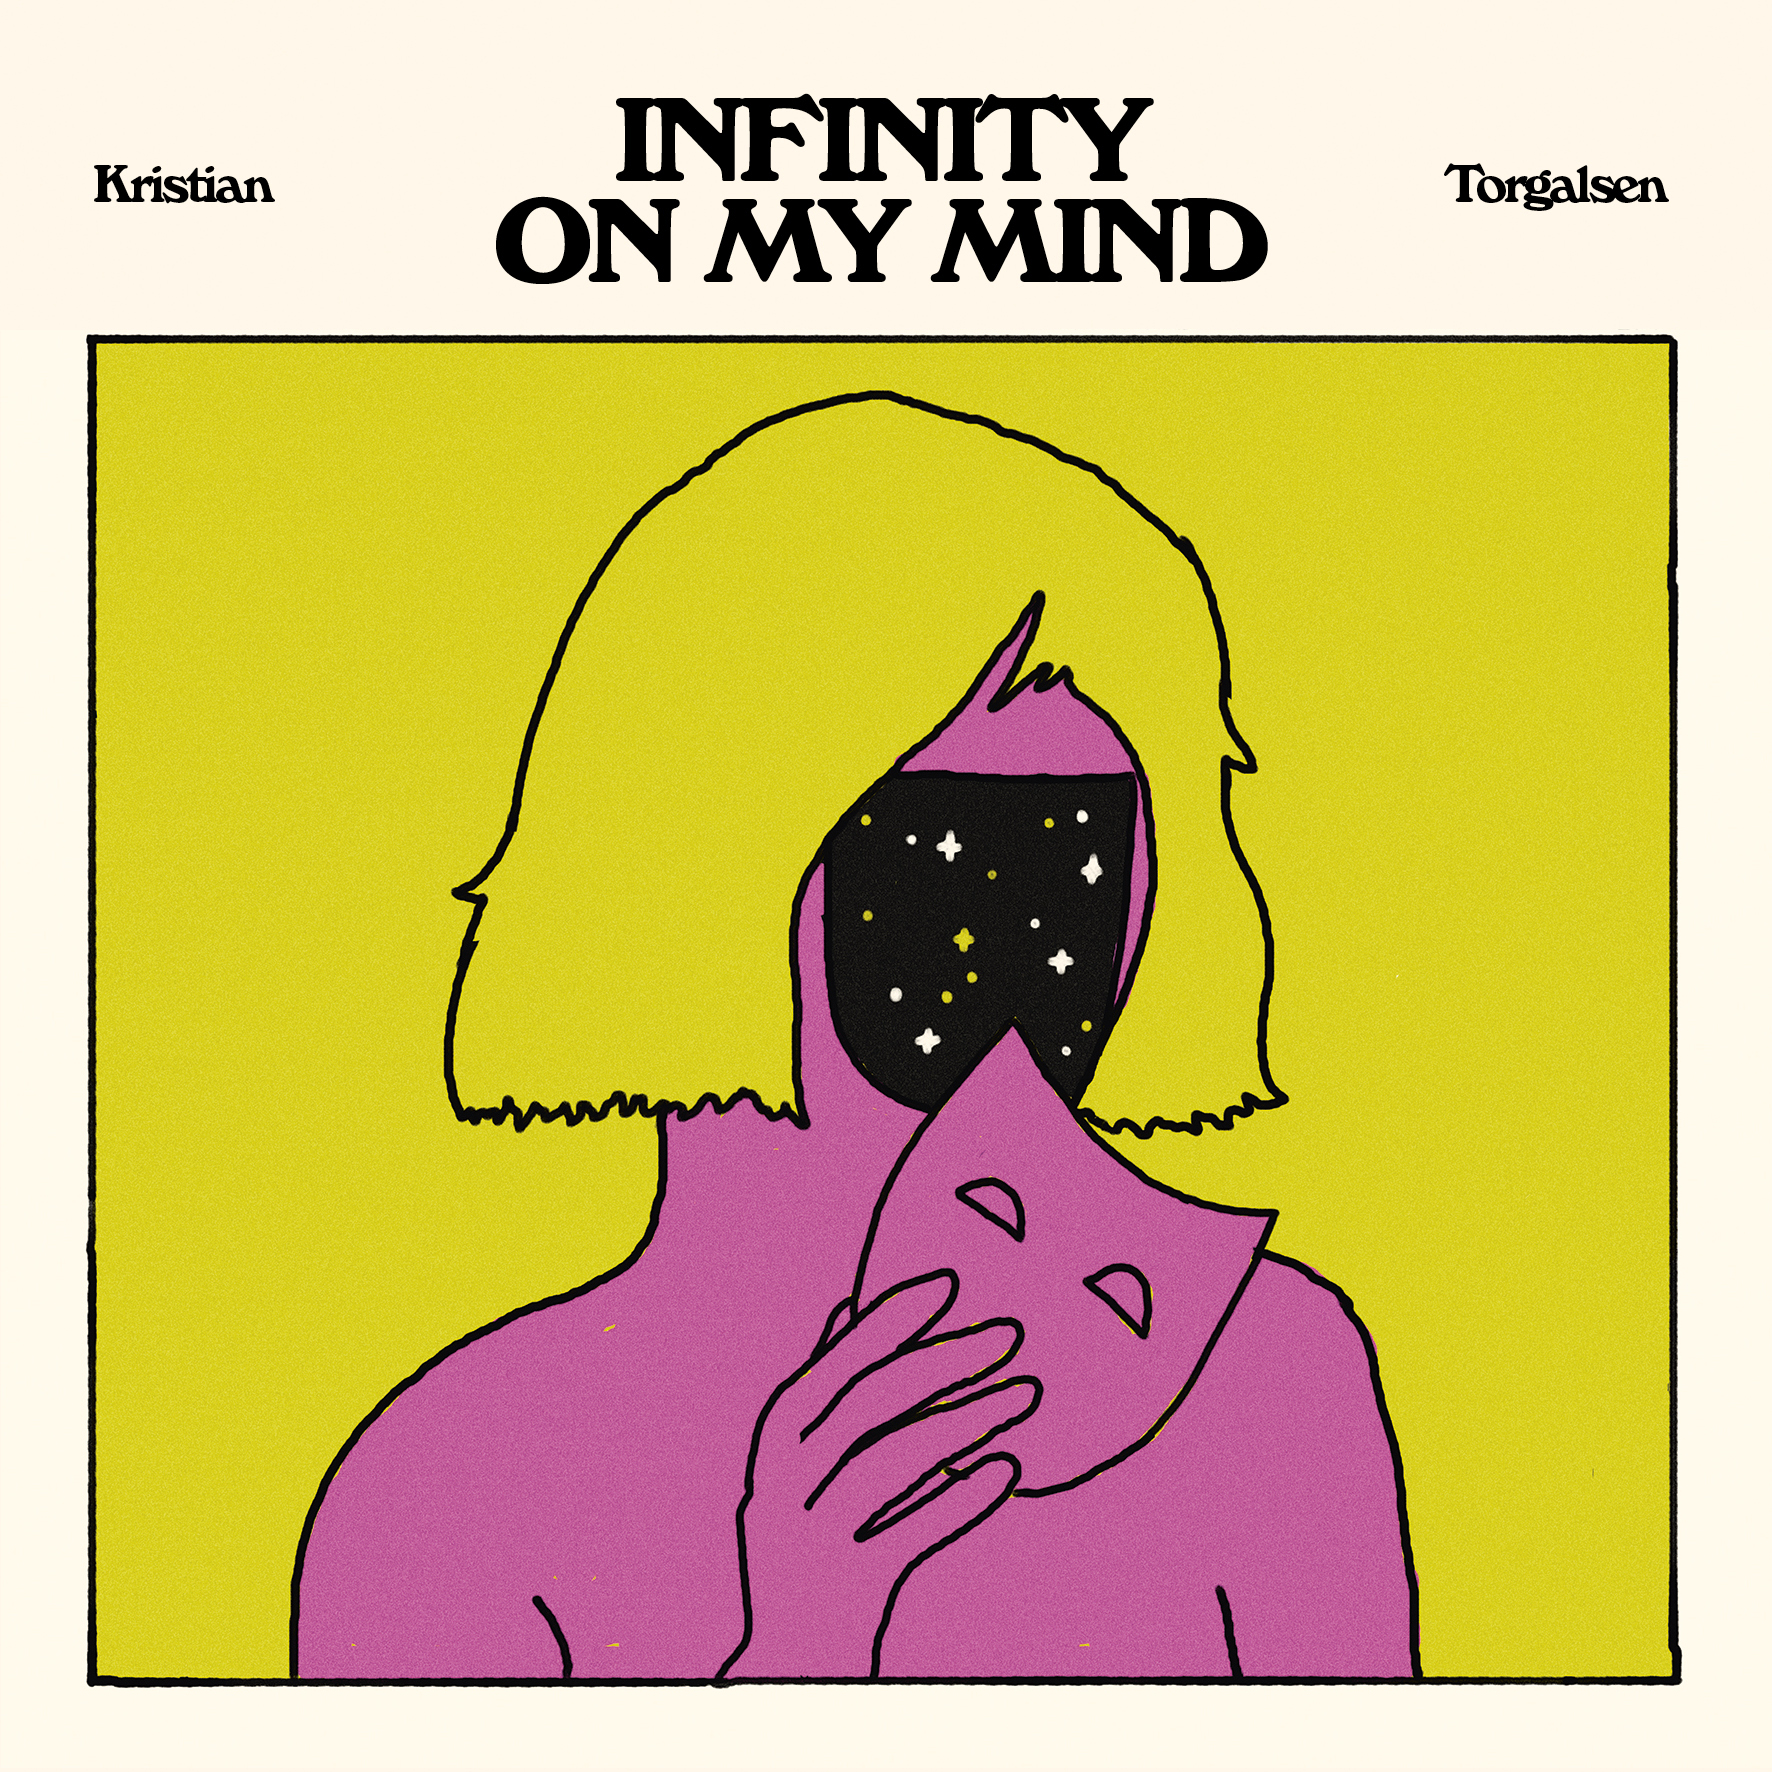 Infinity On My Mind - Released 27. october 2017